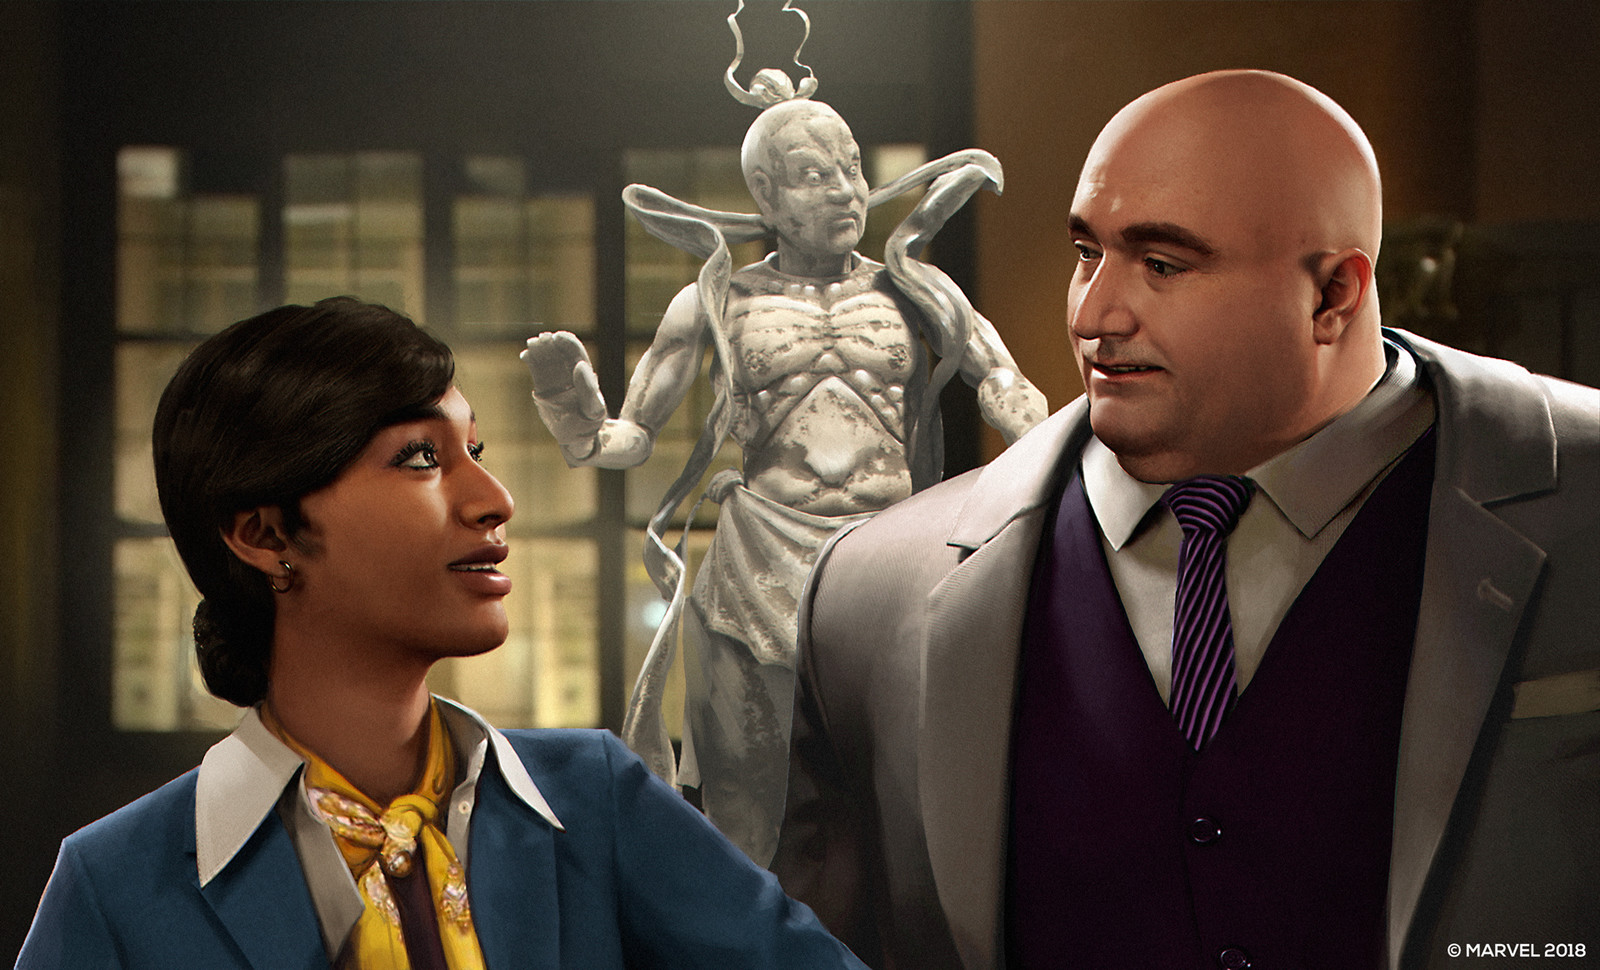 Wilson Fisk and the gallery owner